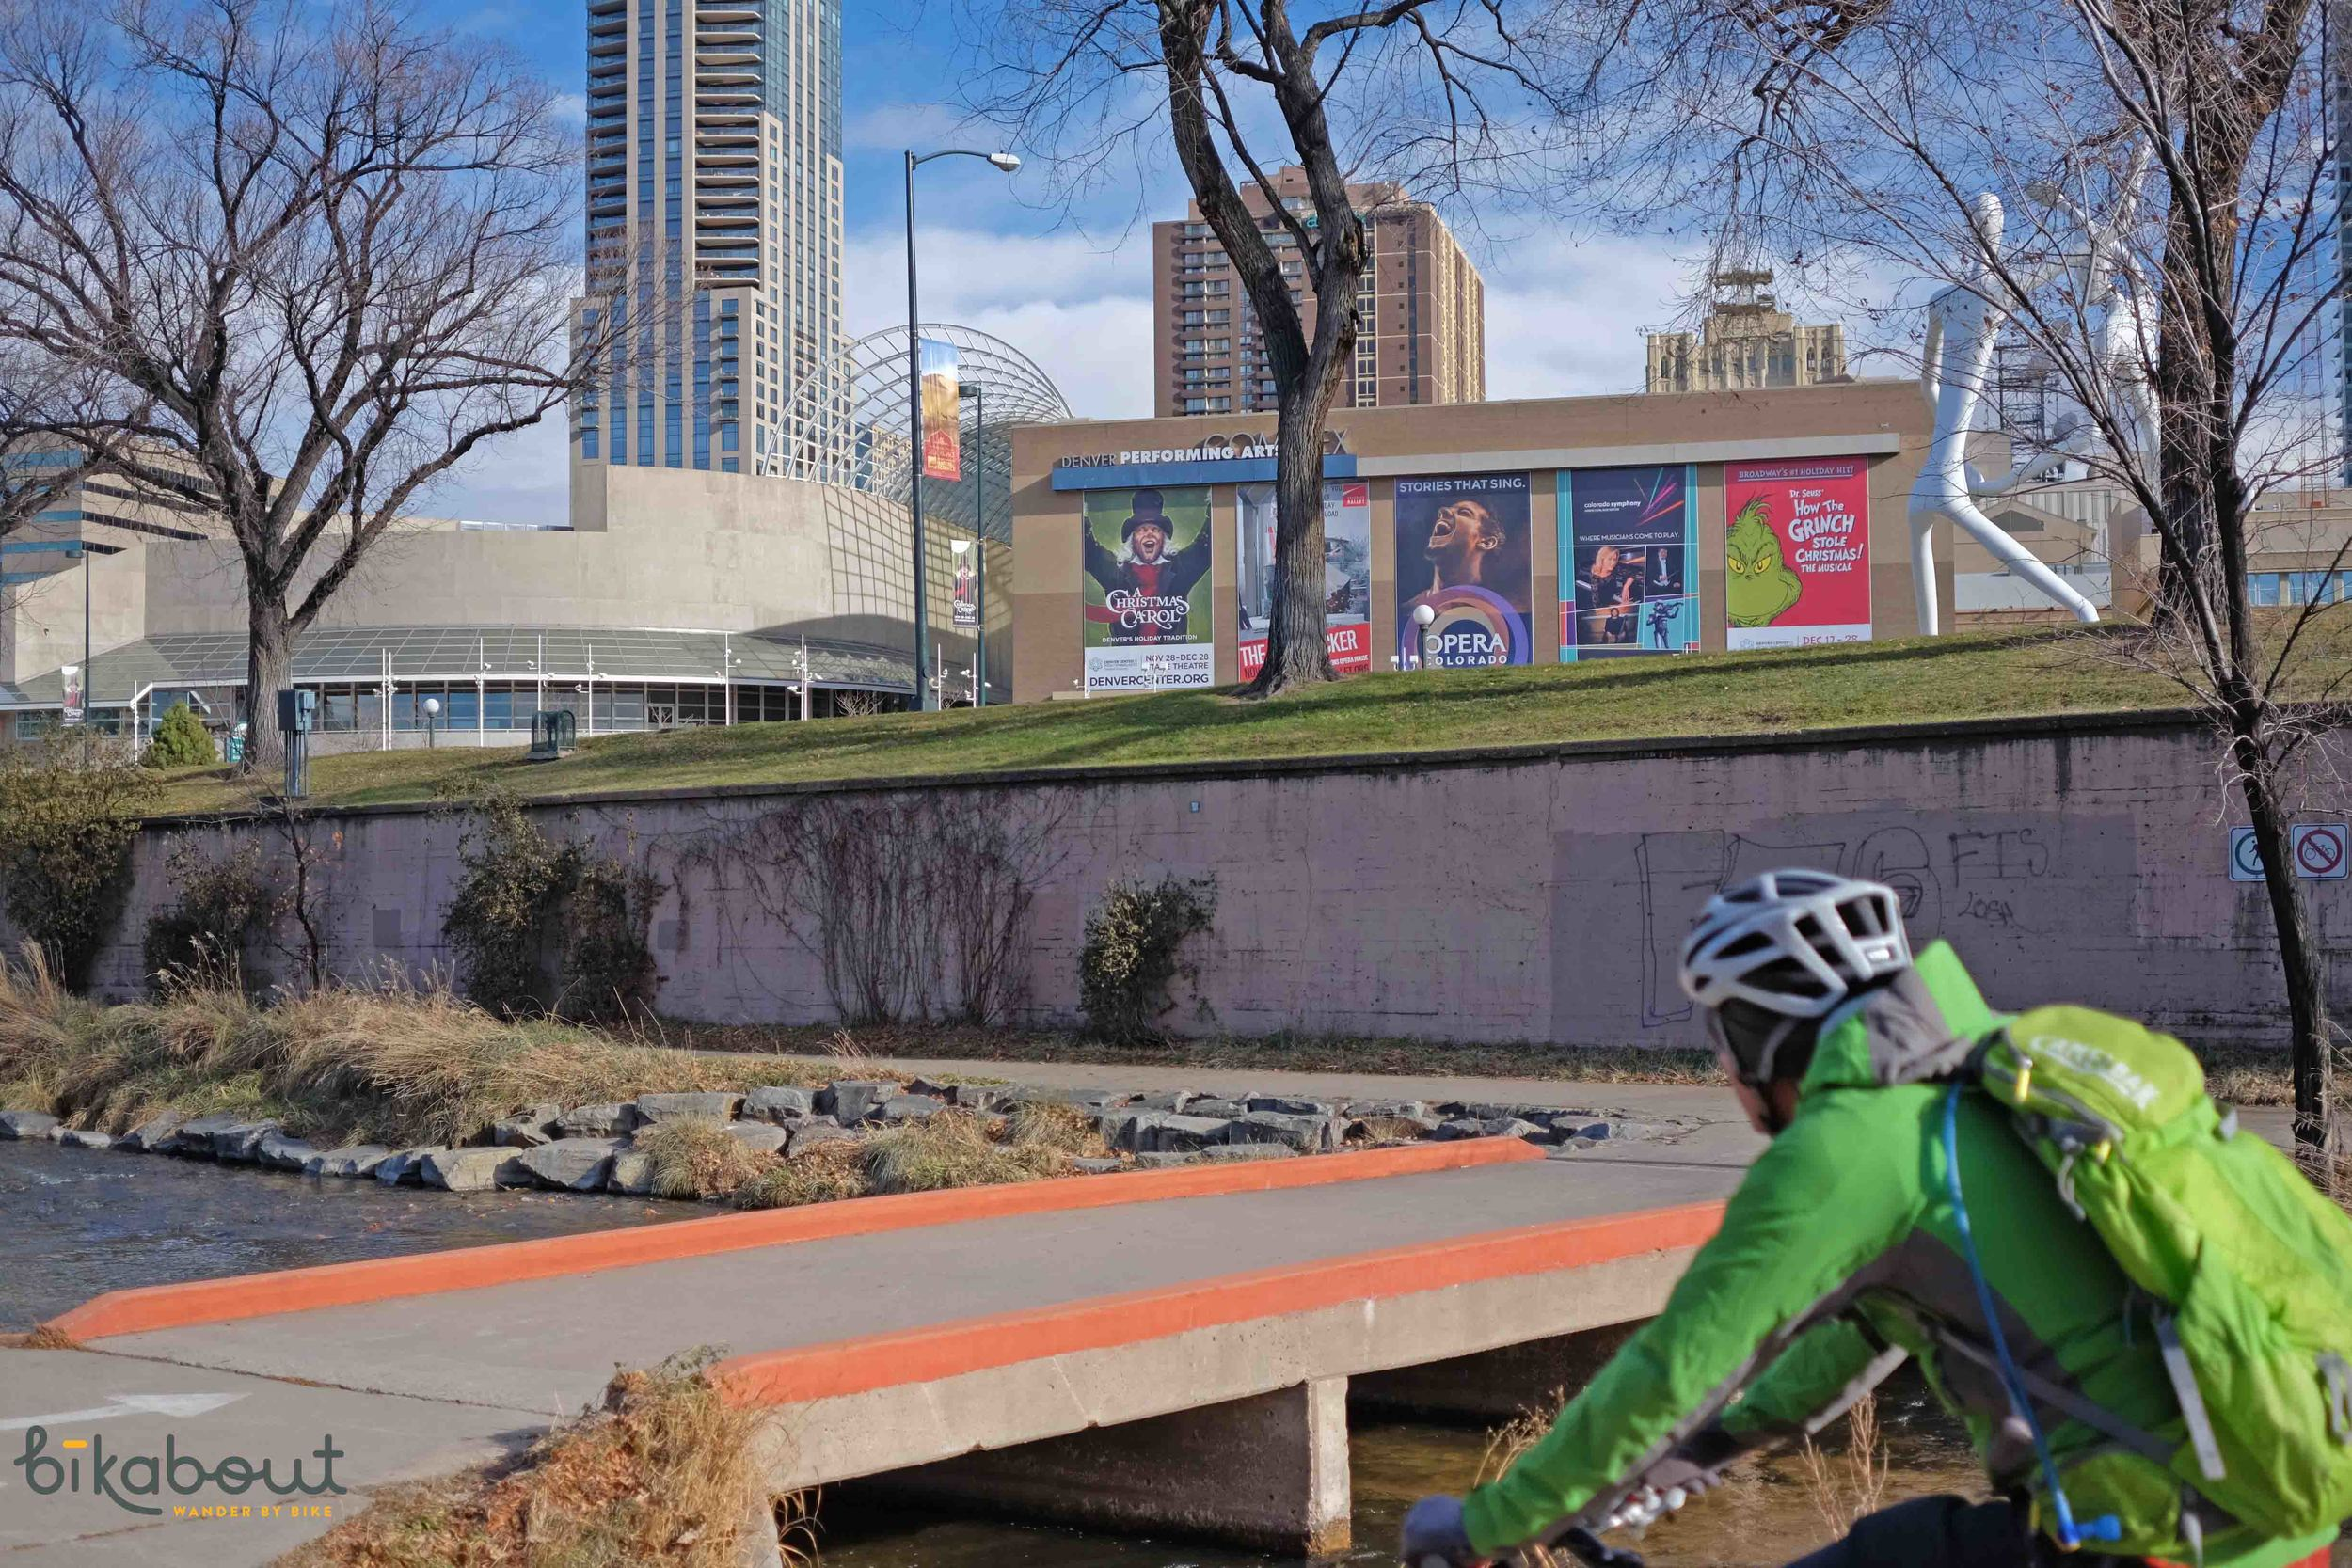 Denver has a slew of river paths that provide a calm ride next to water